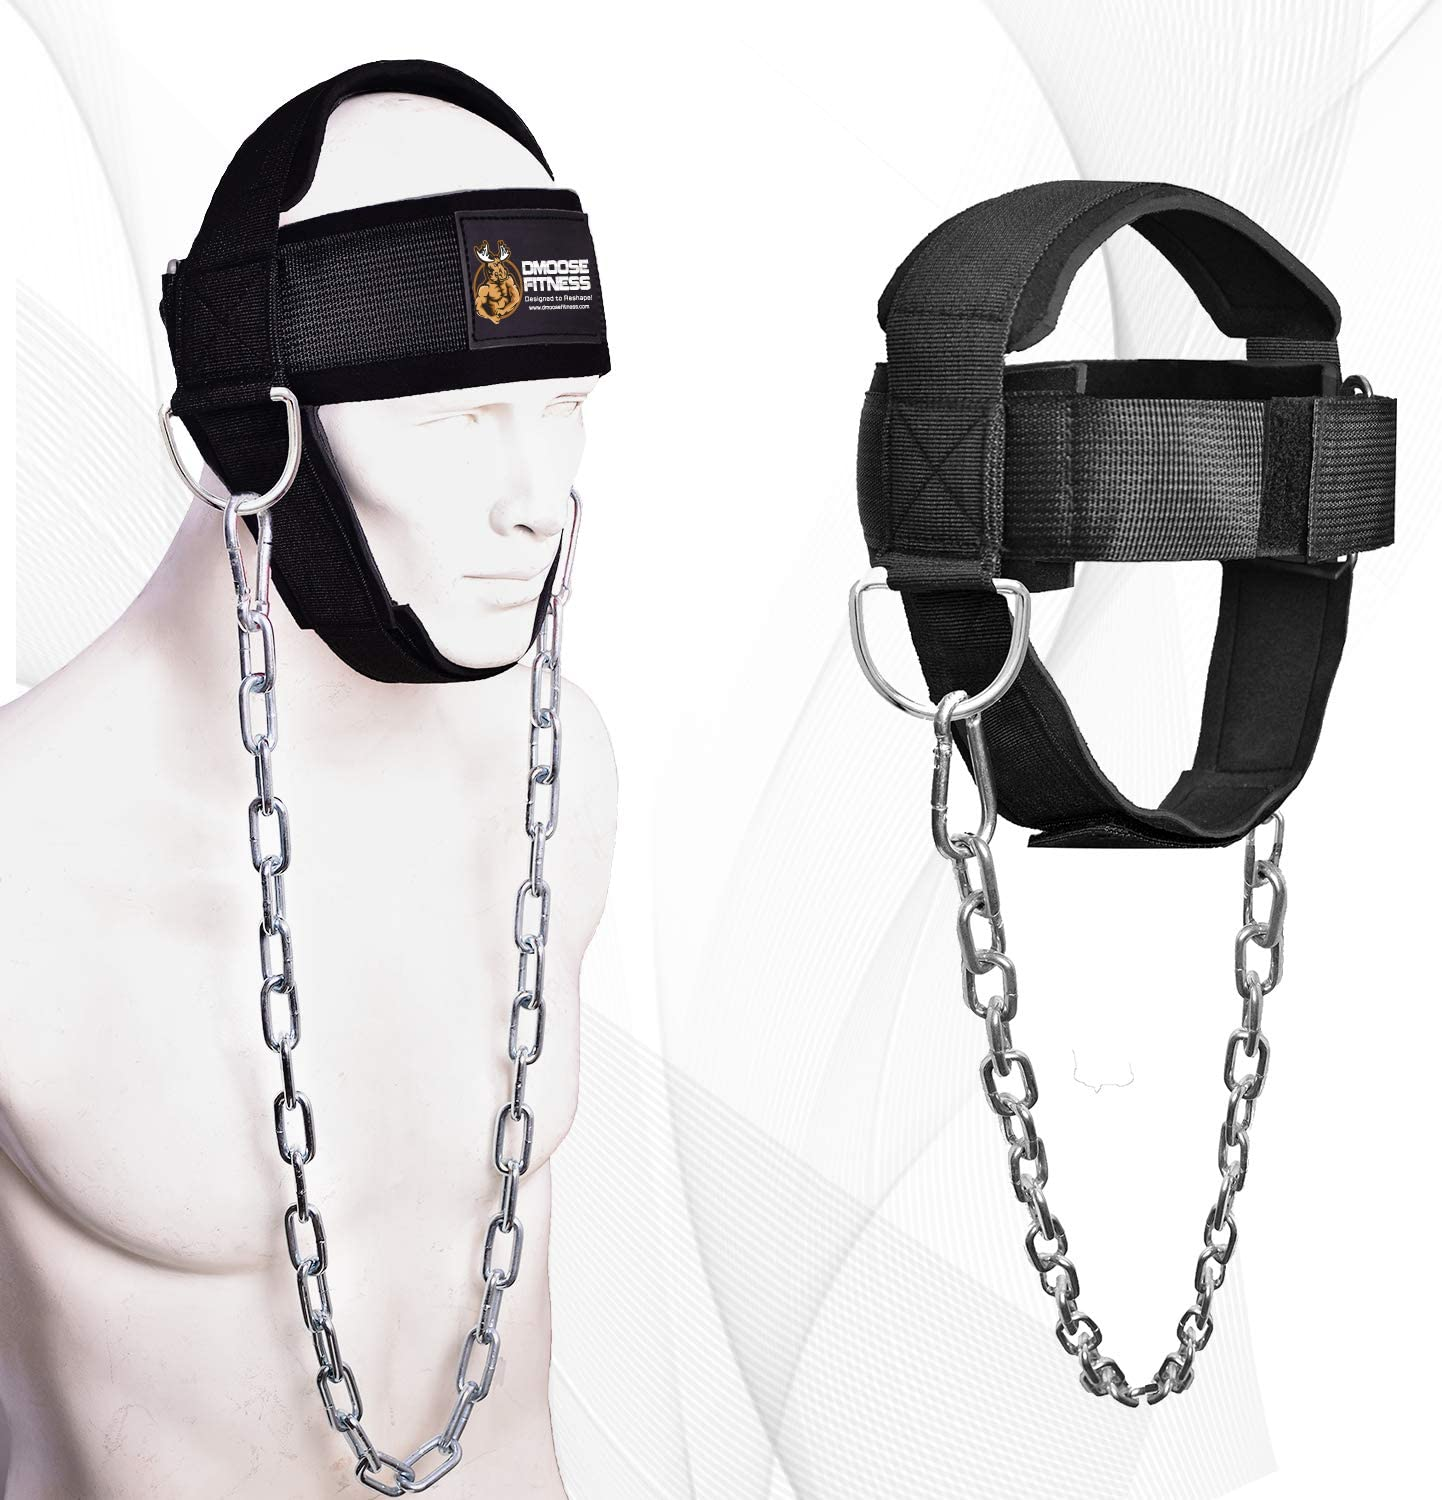 Jayefo Sports Neck Training Harness For Weightlifting